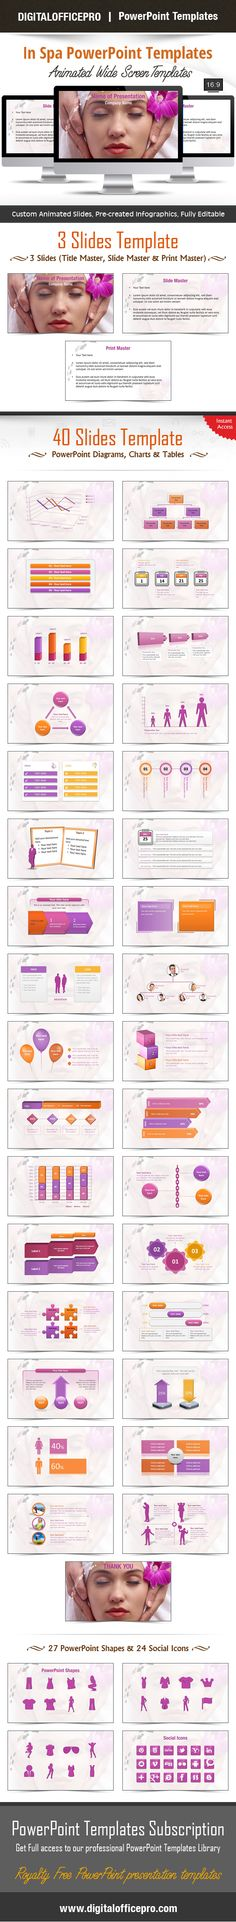 Impress and Engage your audience with In Spa PowerPoint Template and In Spa PowerPoint Backgrounds from DigitalOfficePro. Each template comes with a set of PowerPoint Diagrams, Charts & Shapes and are available for instant download.